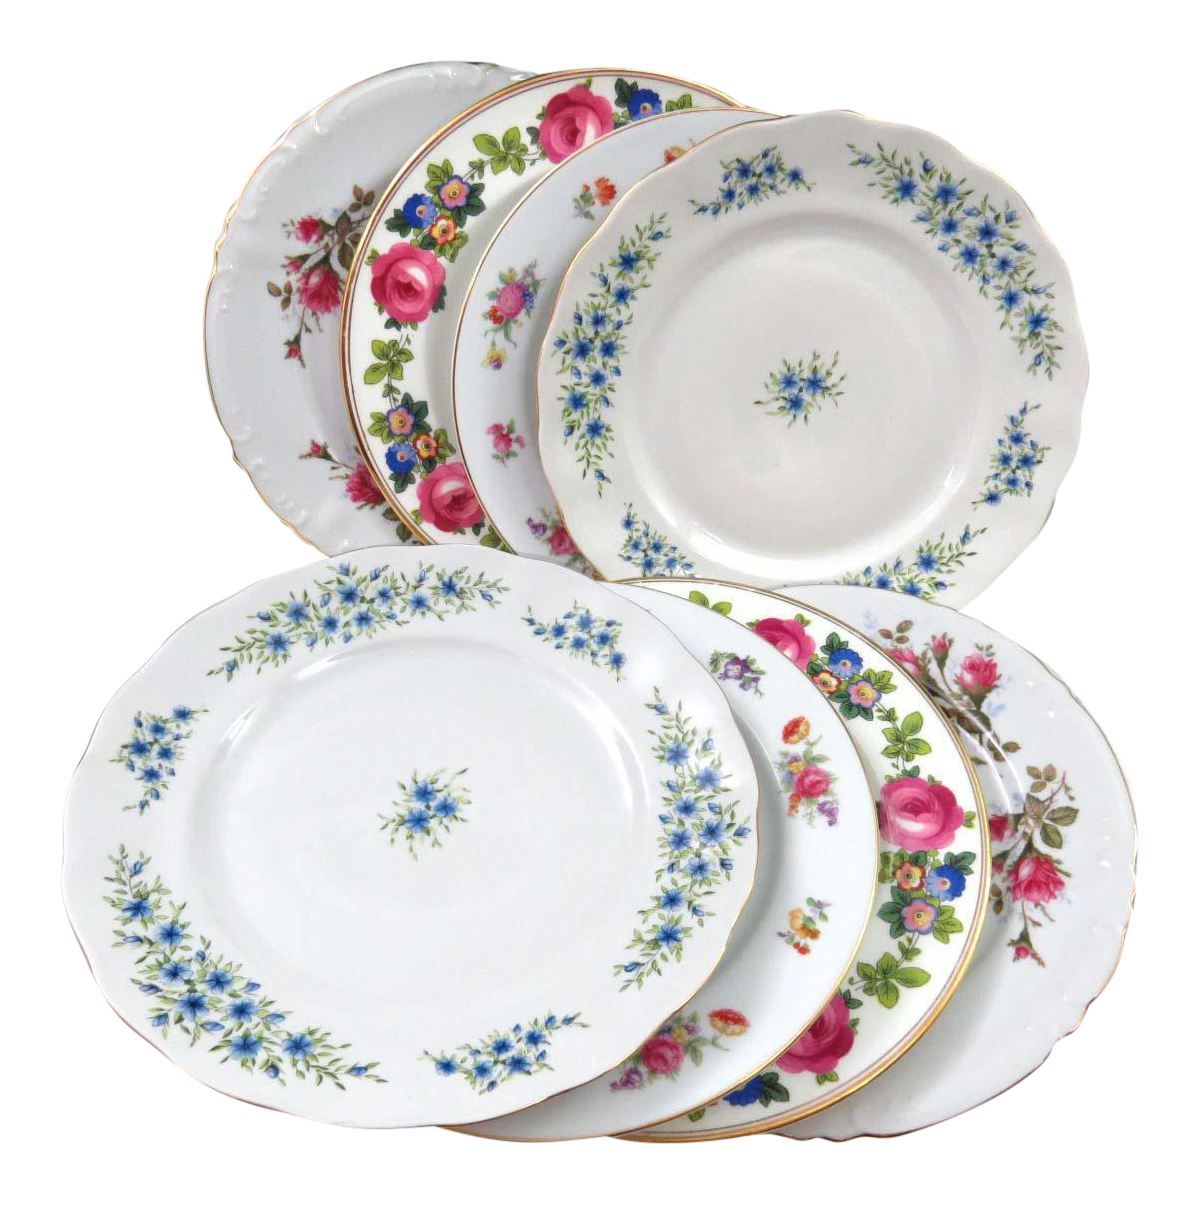 Mismatched Vintage Dinner Plates - Set of 8  sc 1 st  Chairish & Mismatched Vintage Dinner Plates - Set of 8 | Chairish